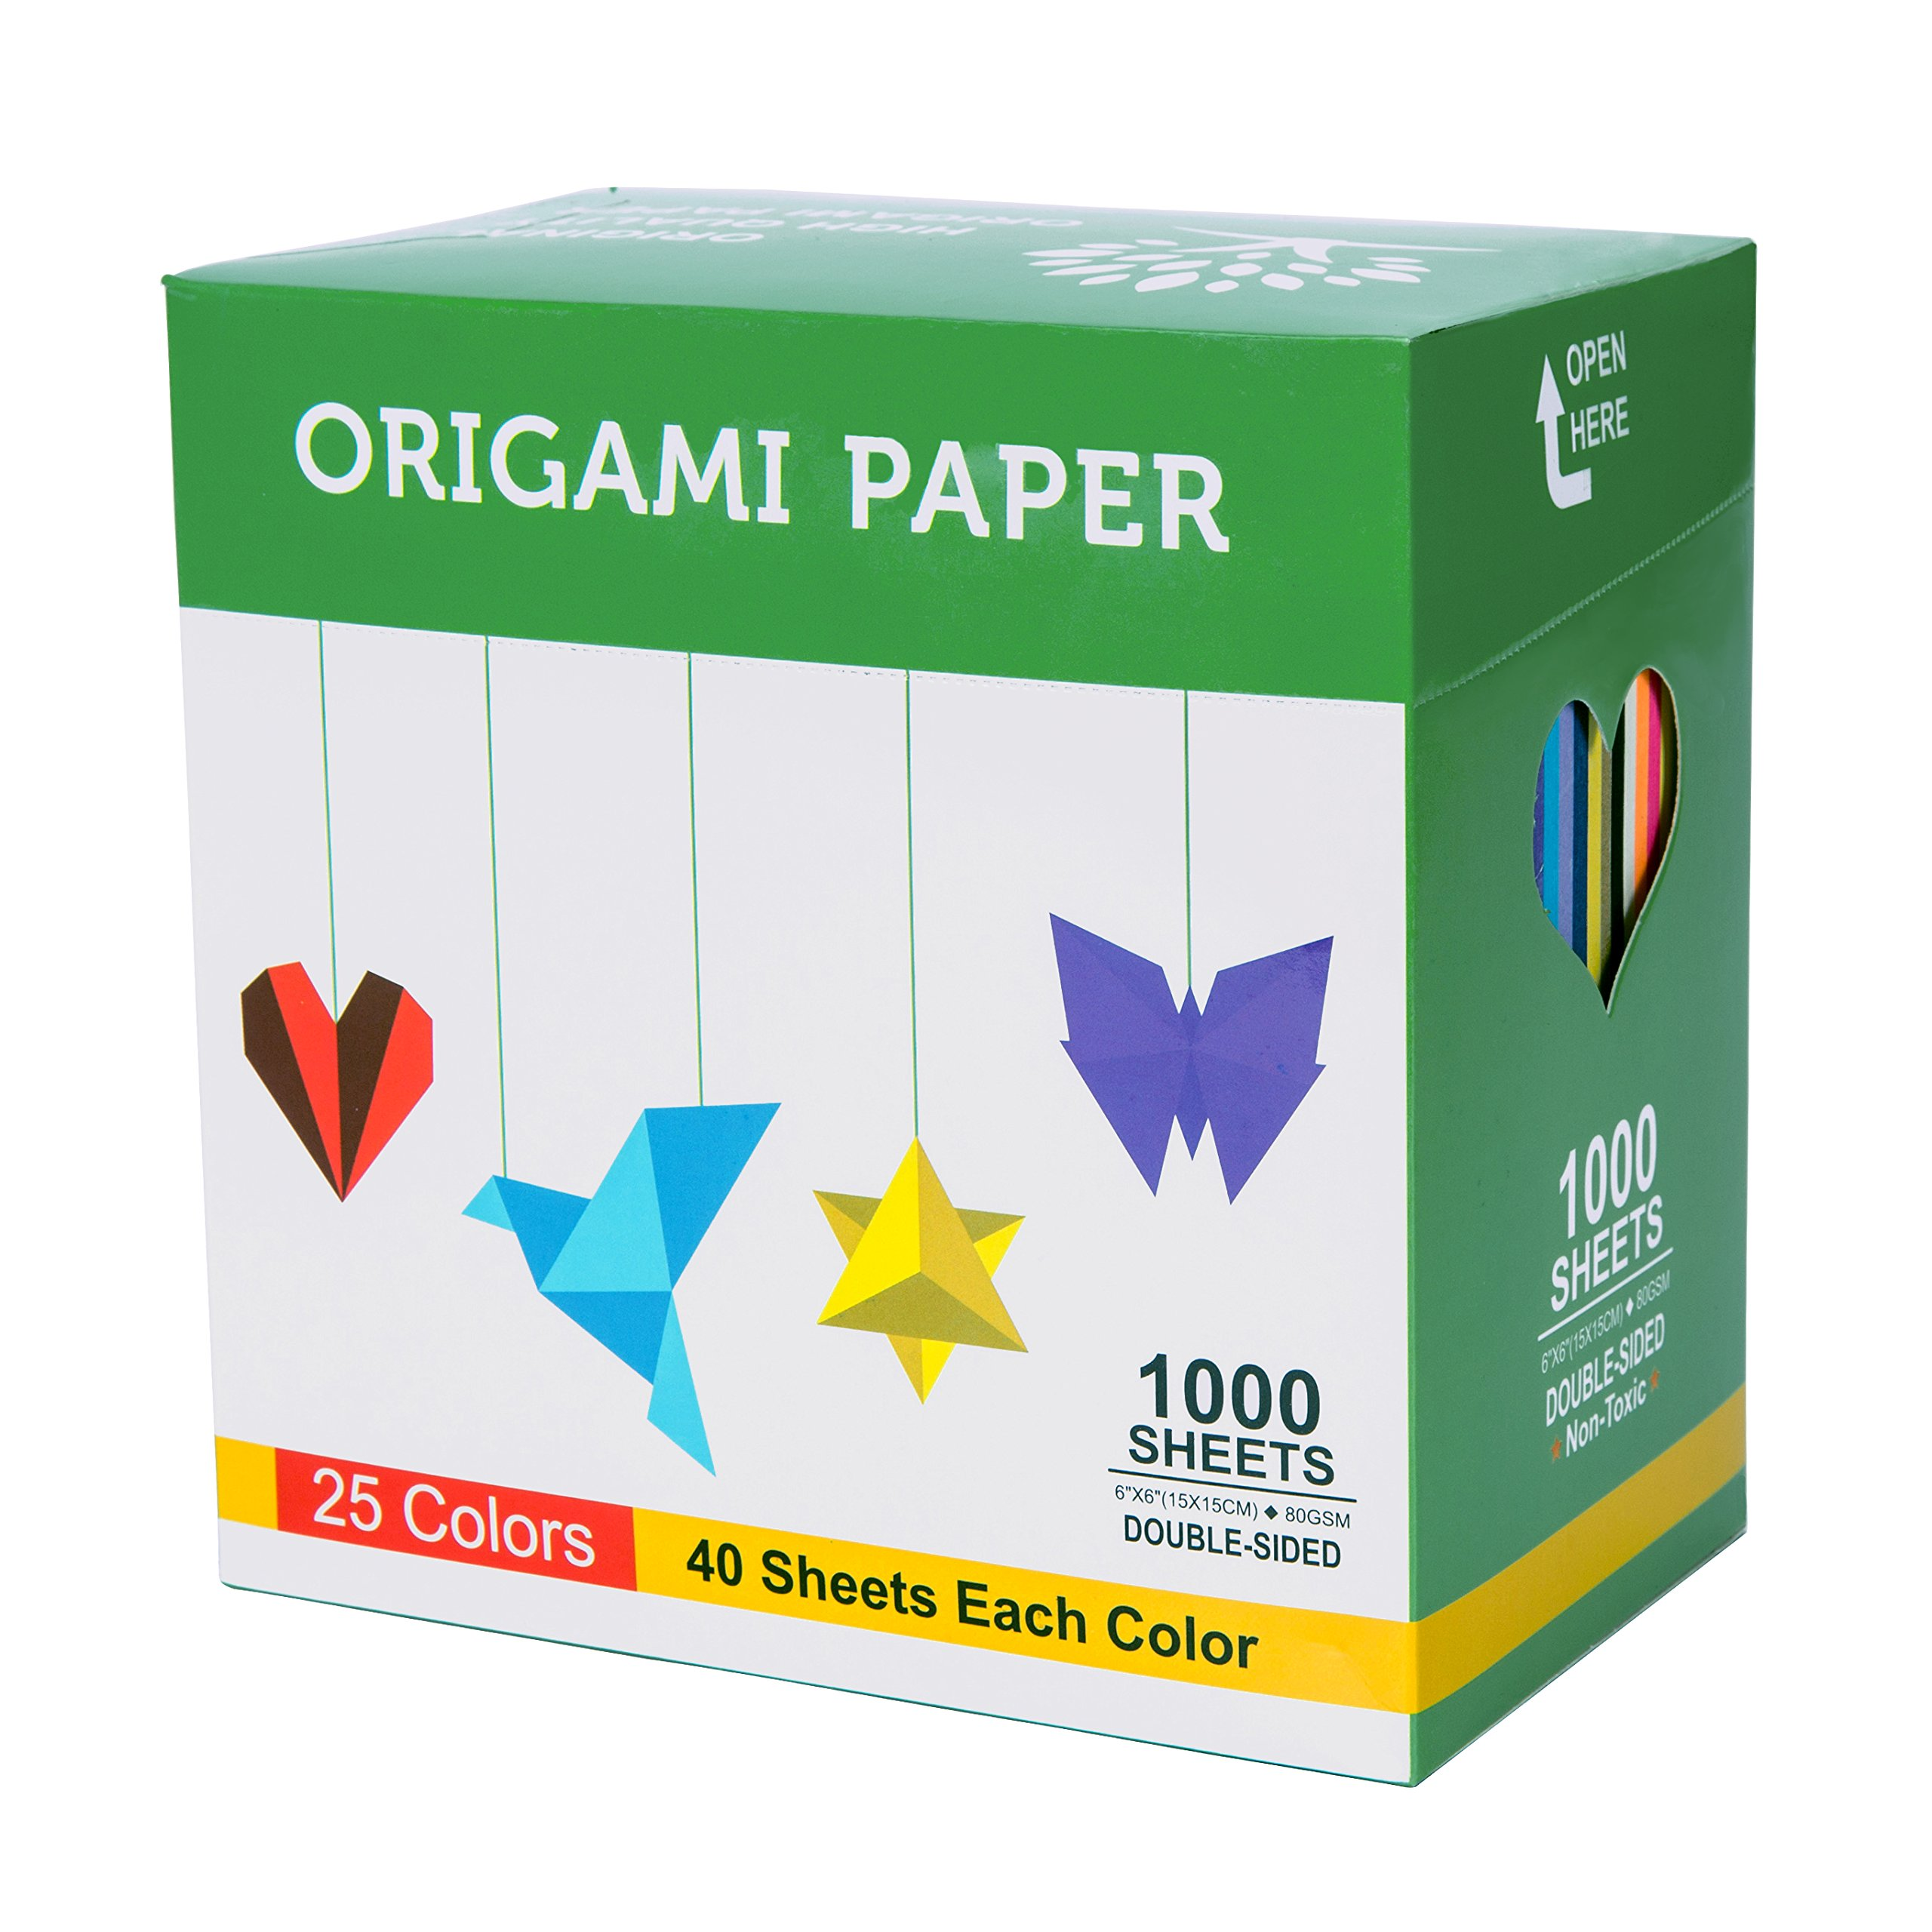 OC2000 Yasutomo One Thousand Origami Cranes Kit